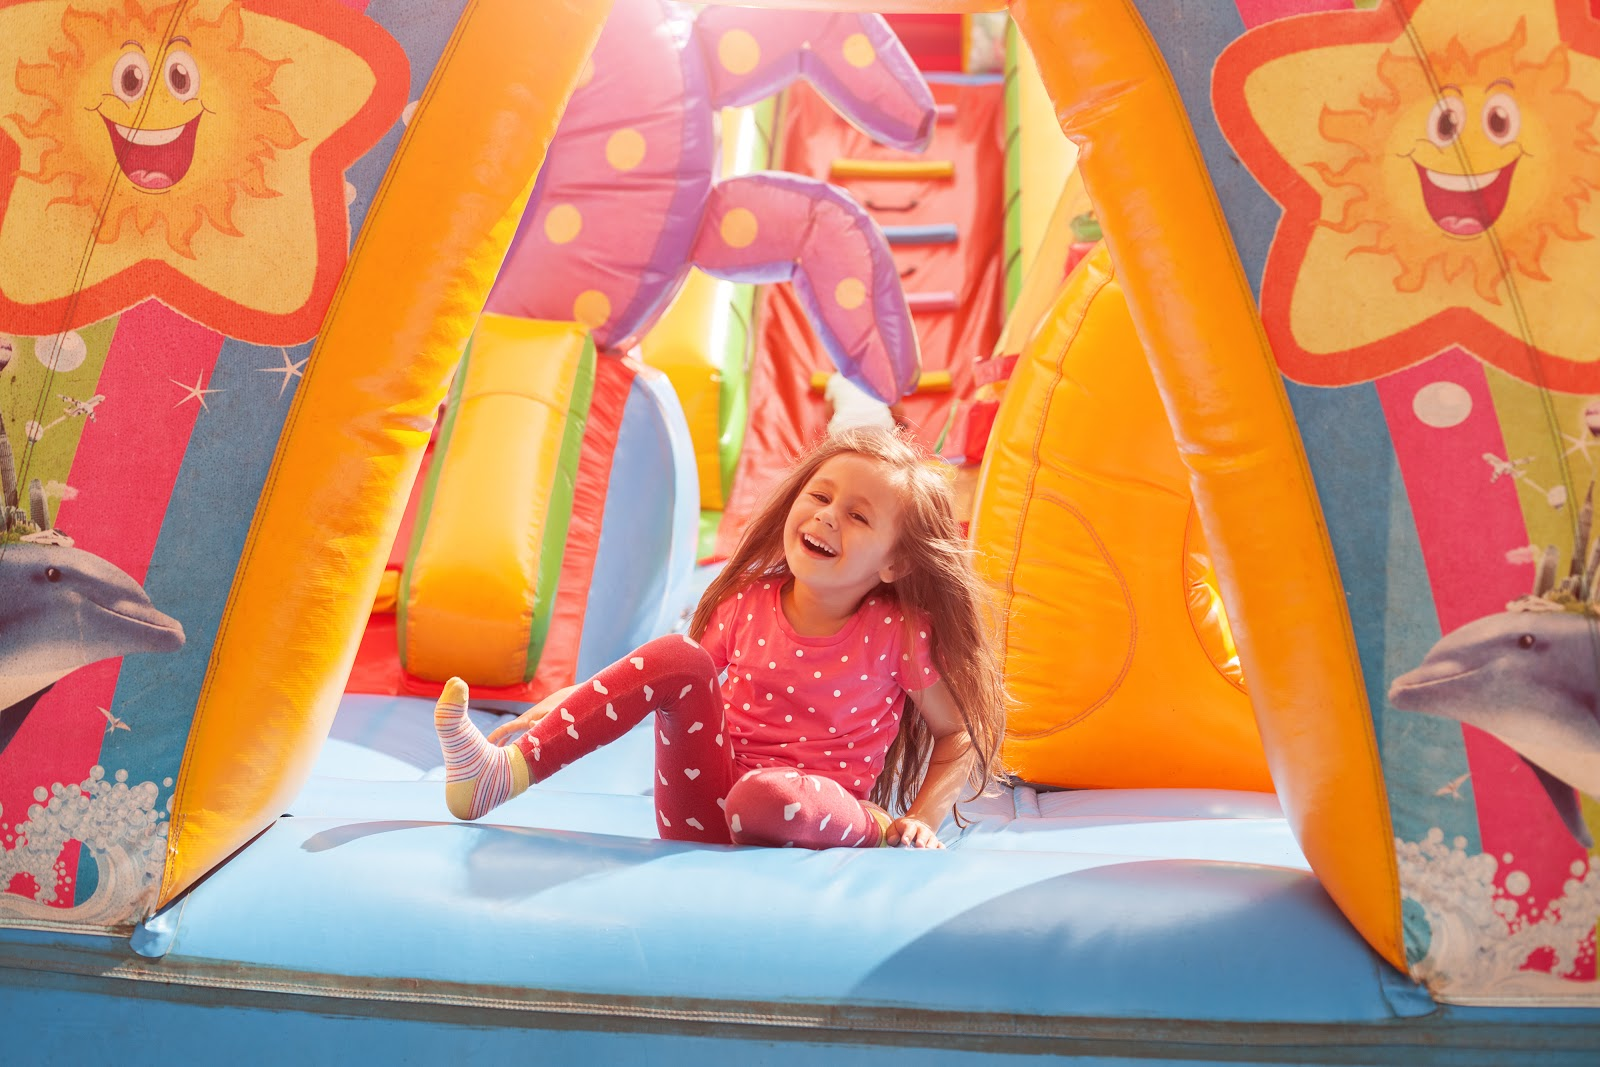 Party games for kids: Child playing in inflatable tent